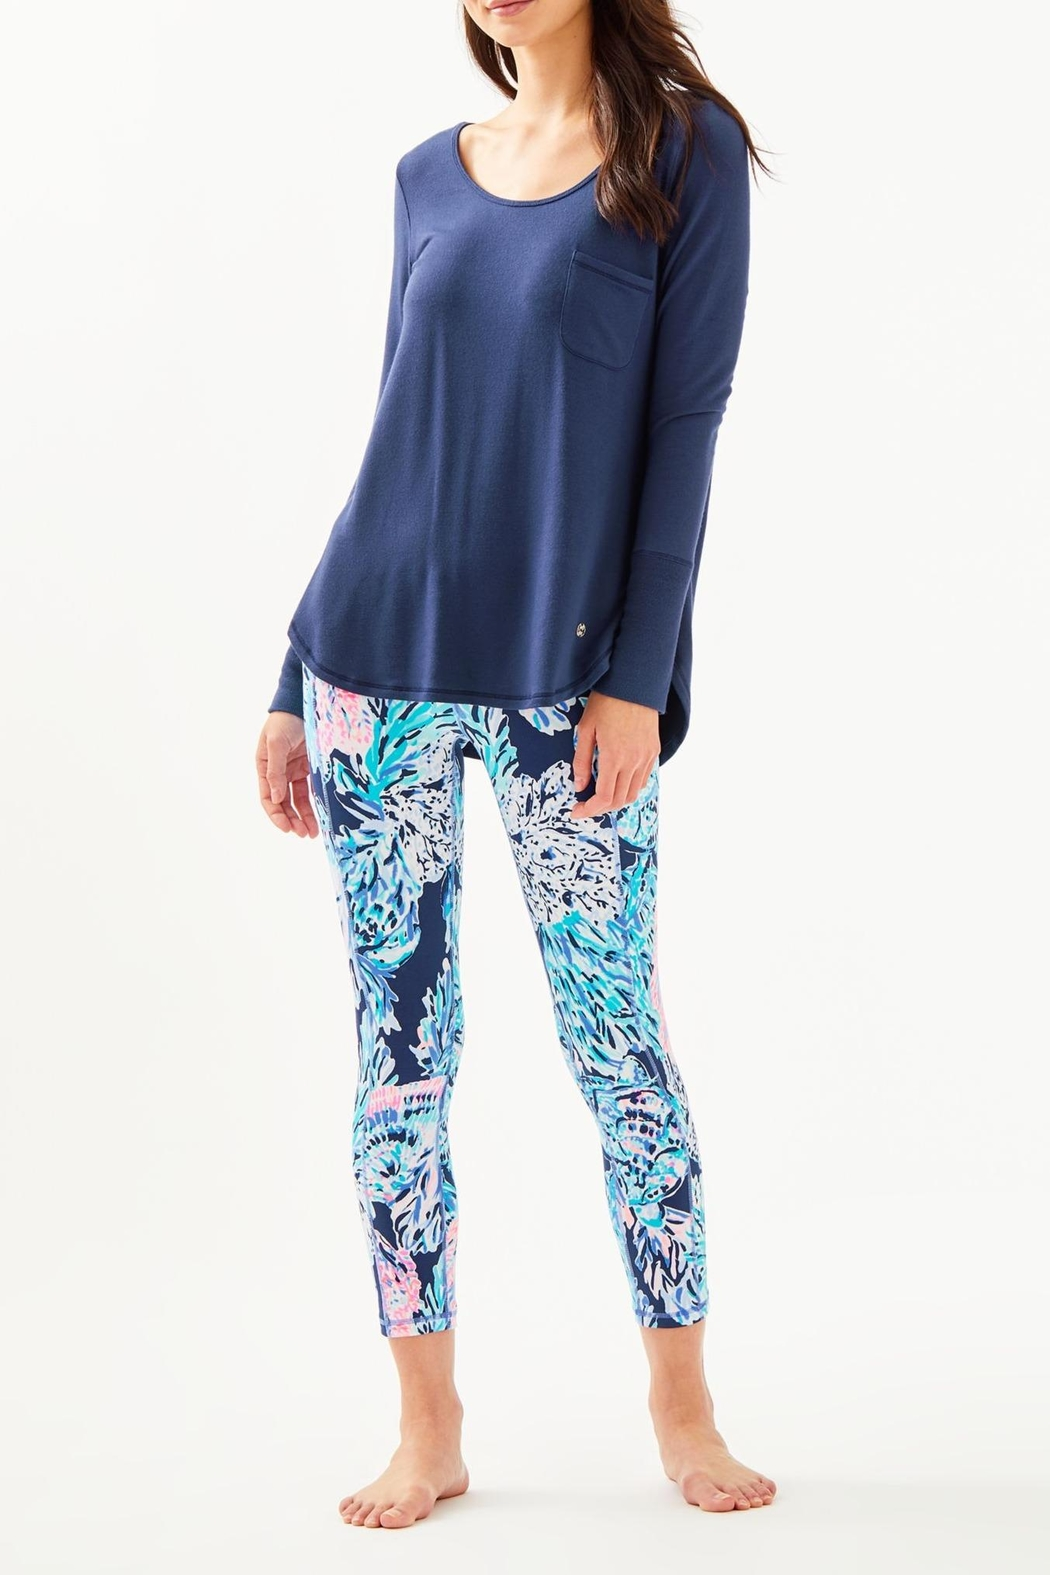 Lilly Pulitzer Luxletic Kerah Tee - Side Cropped Image